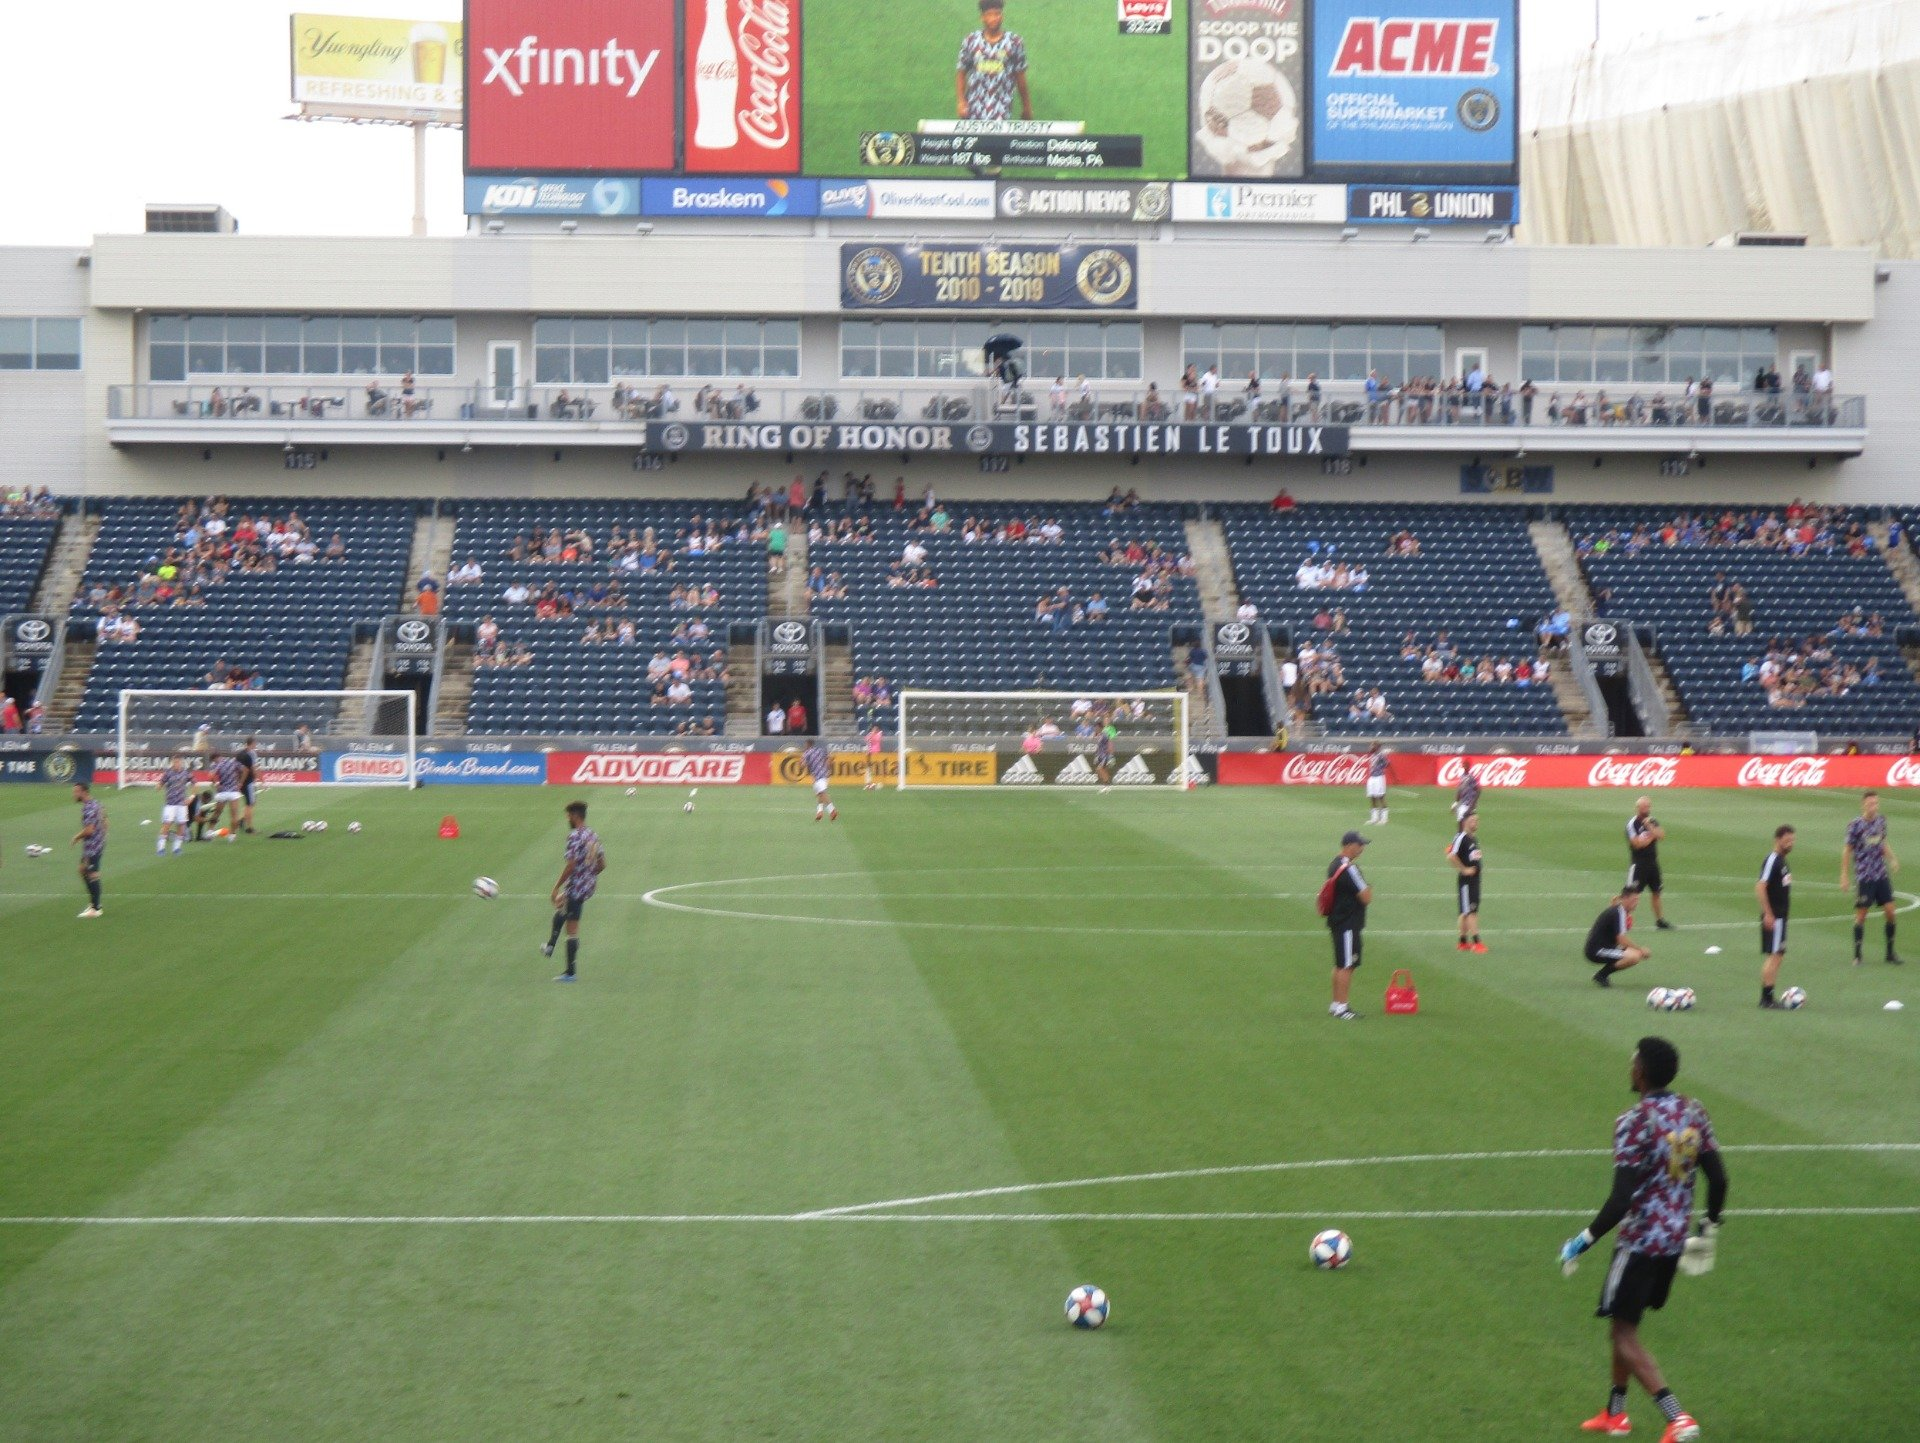 talen energy stadium Section 139 Row 1 Seat 1